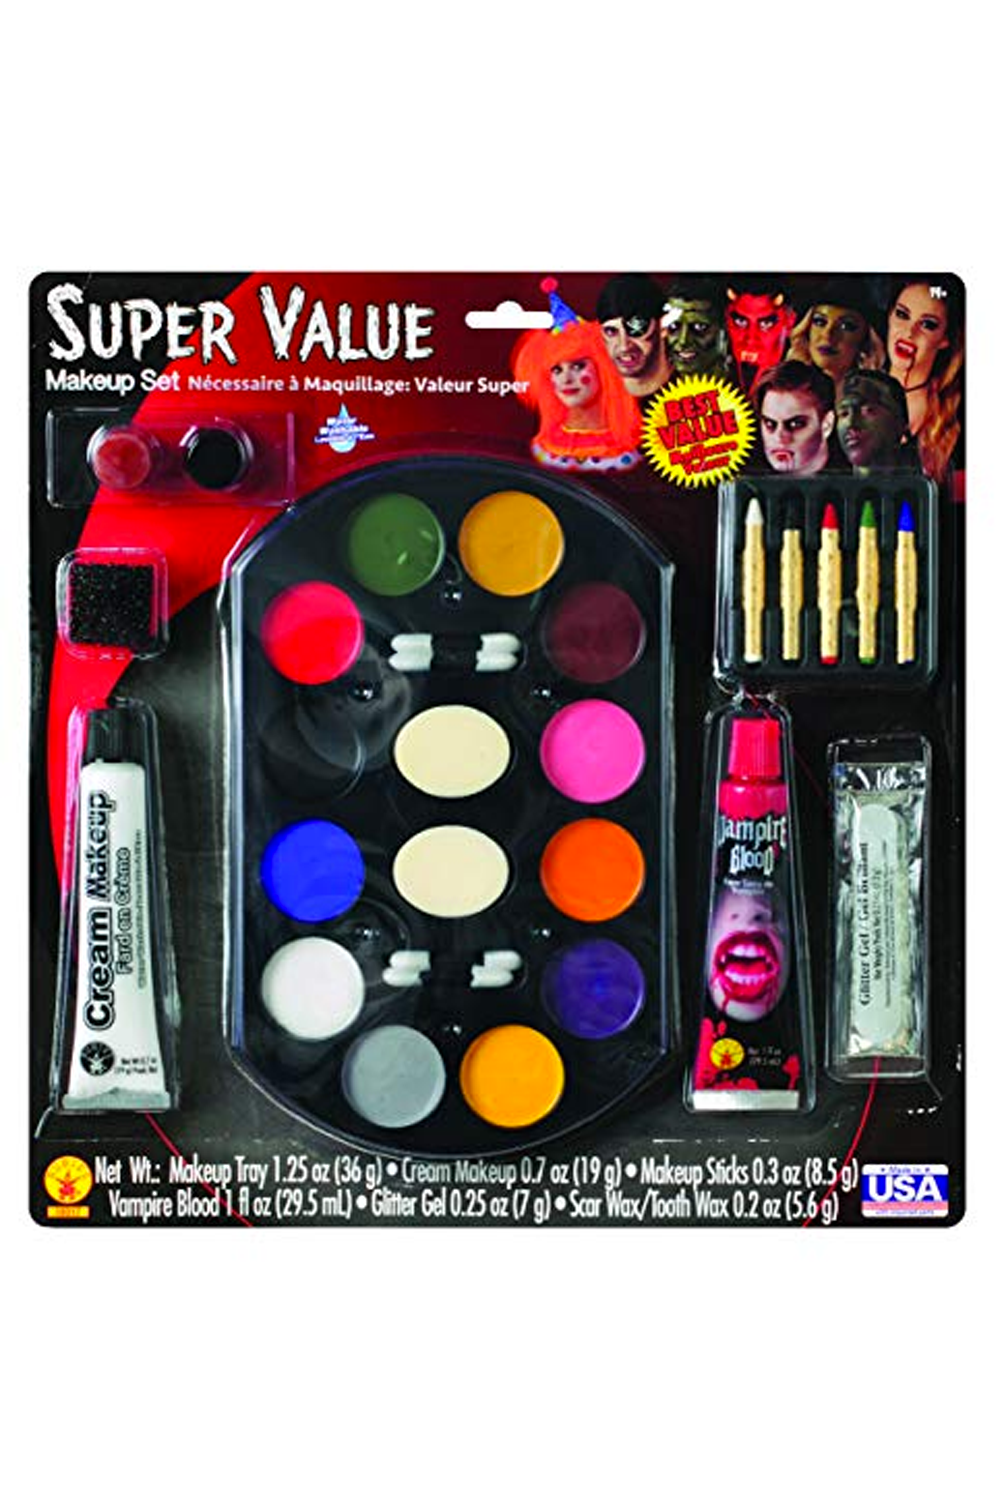 10 Best Makeup Kits For Easy